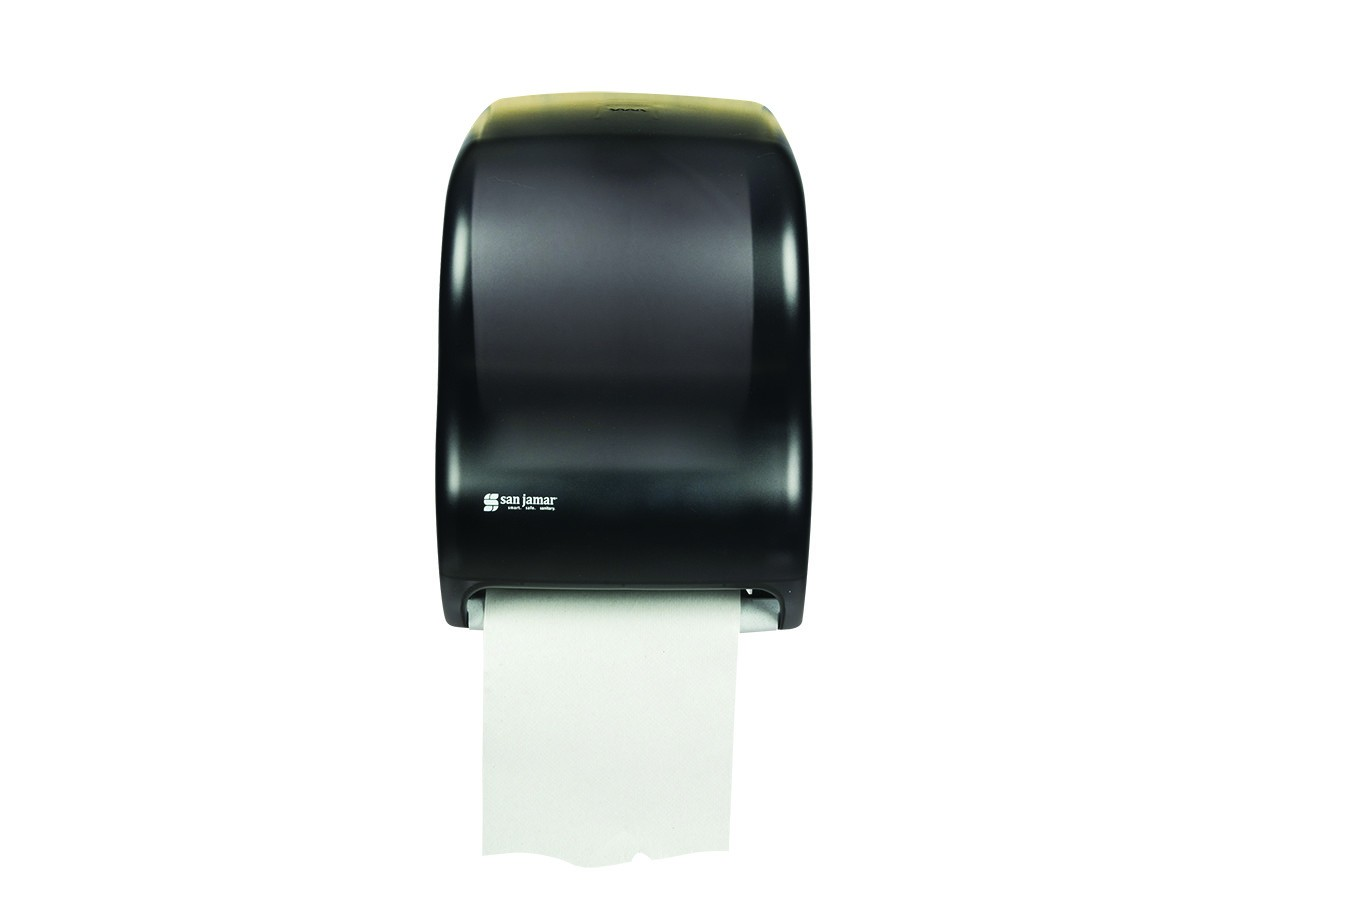 San Jamar T1300TBK Classic Black Pearl Tear-N-Dry Electronic No Touch Roll Towel Dispenser